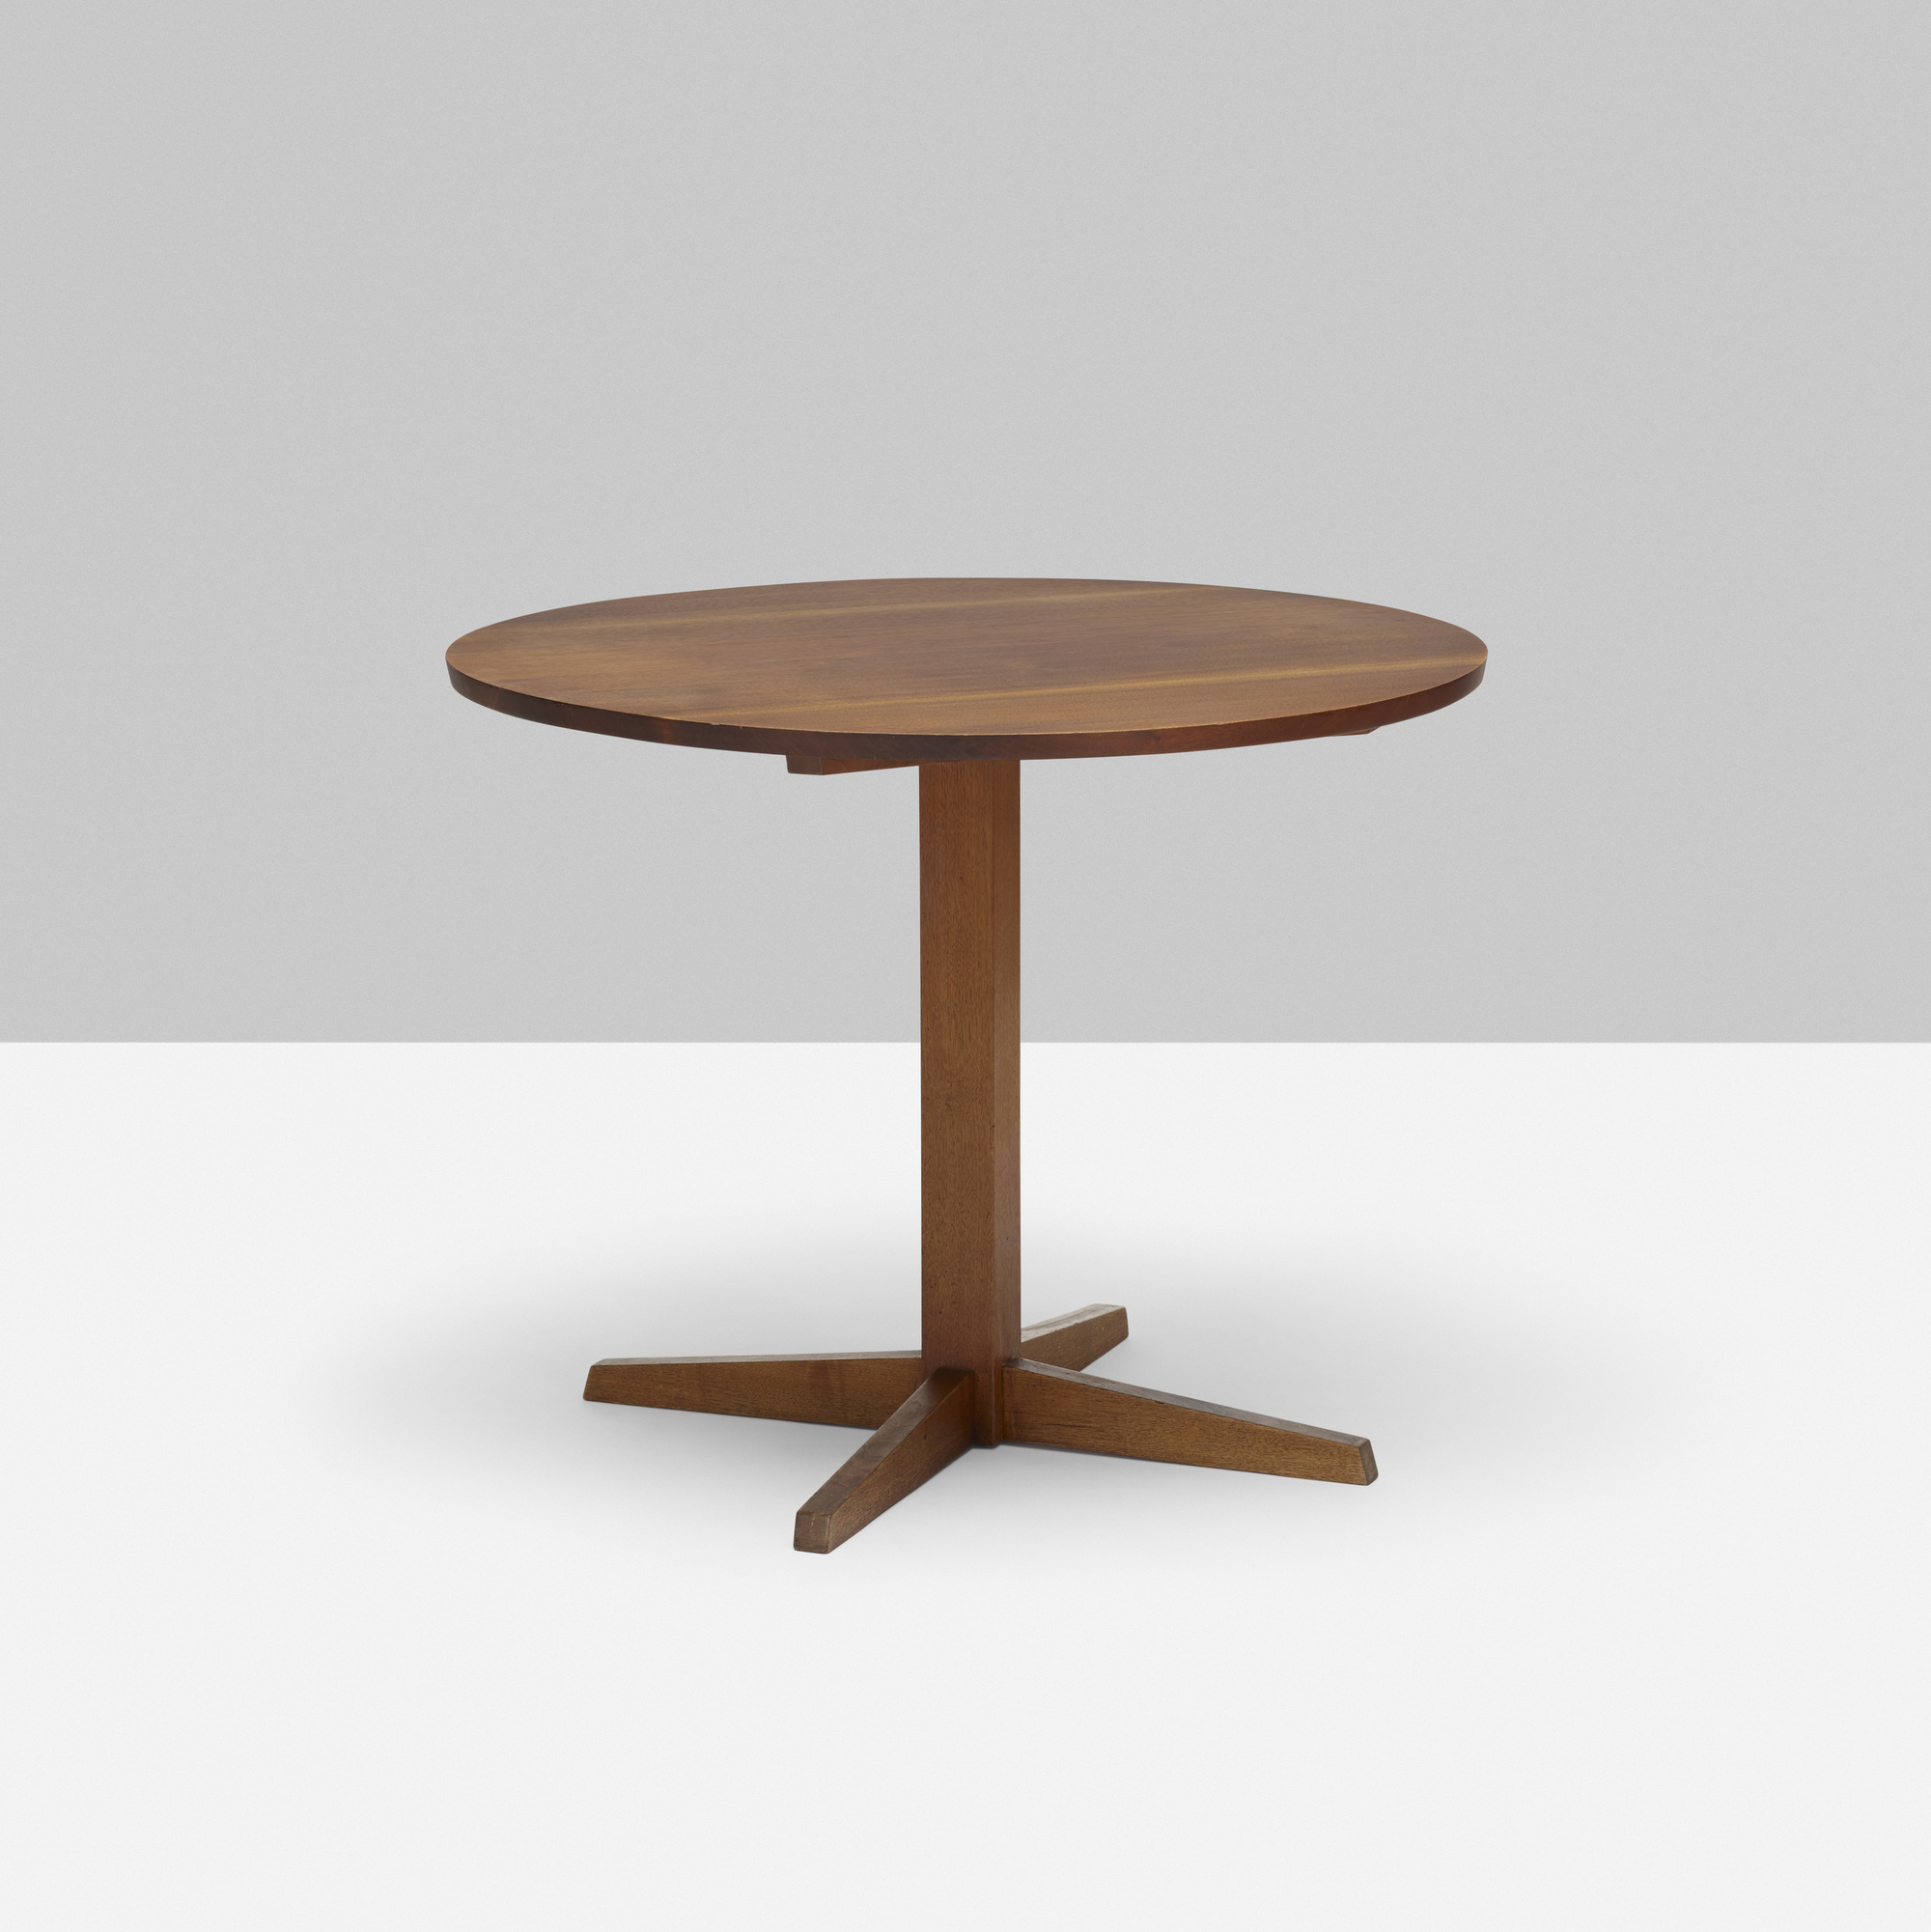 177: George Nakashima / Round Pedestal Table (1 Of 1)